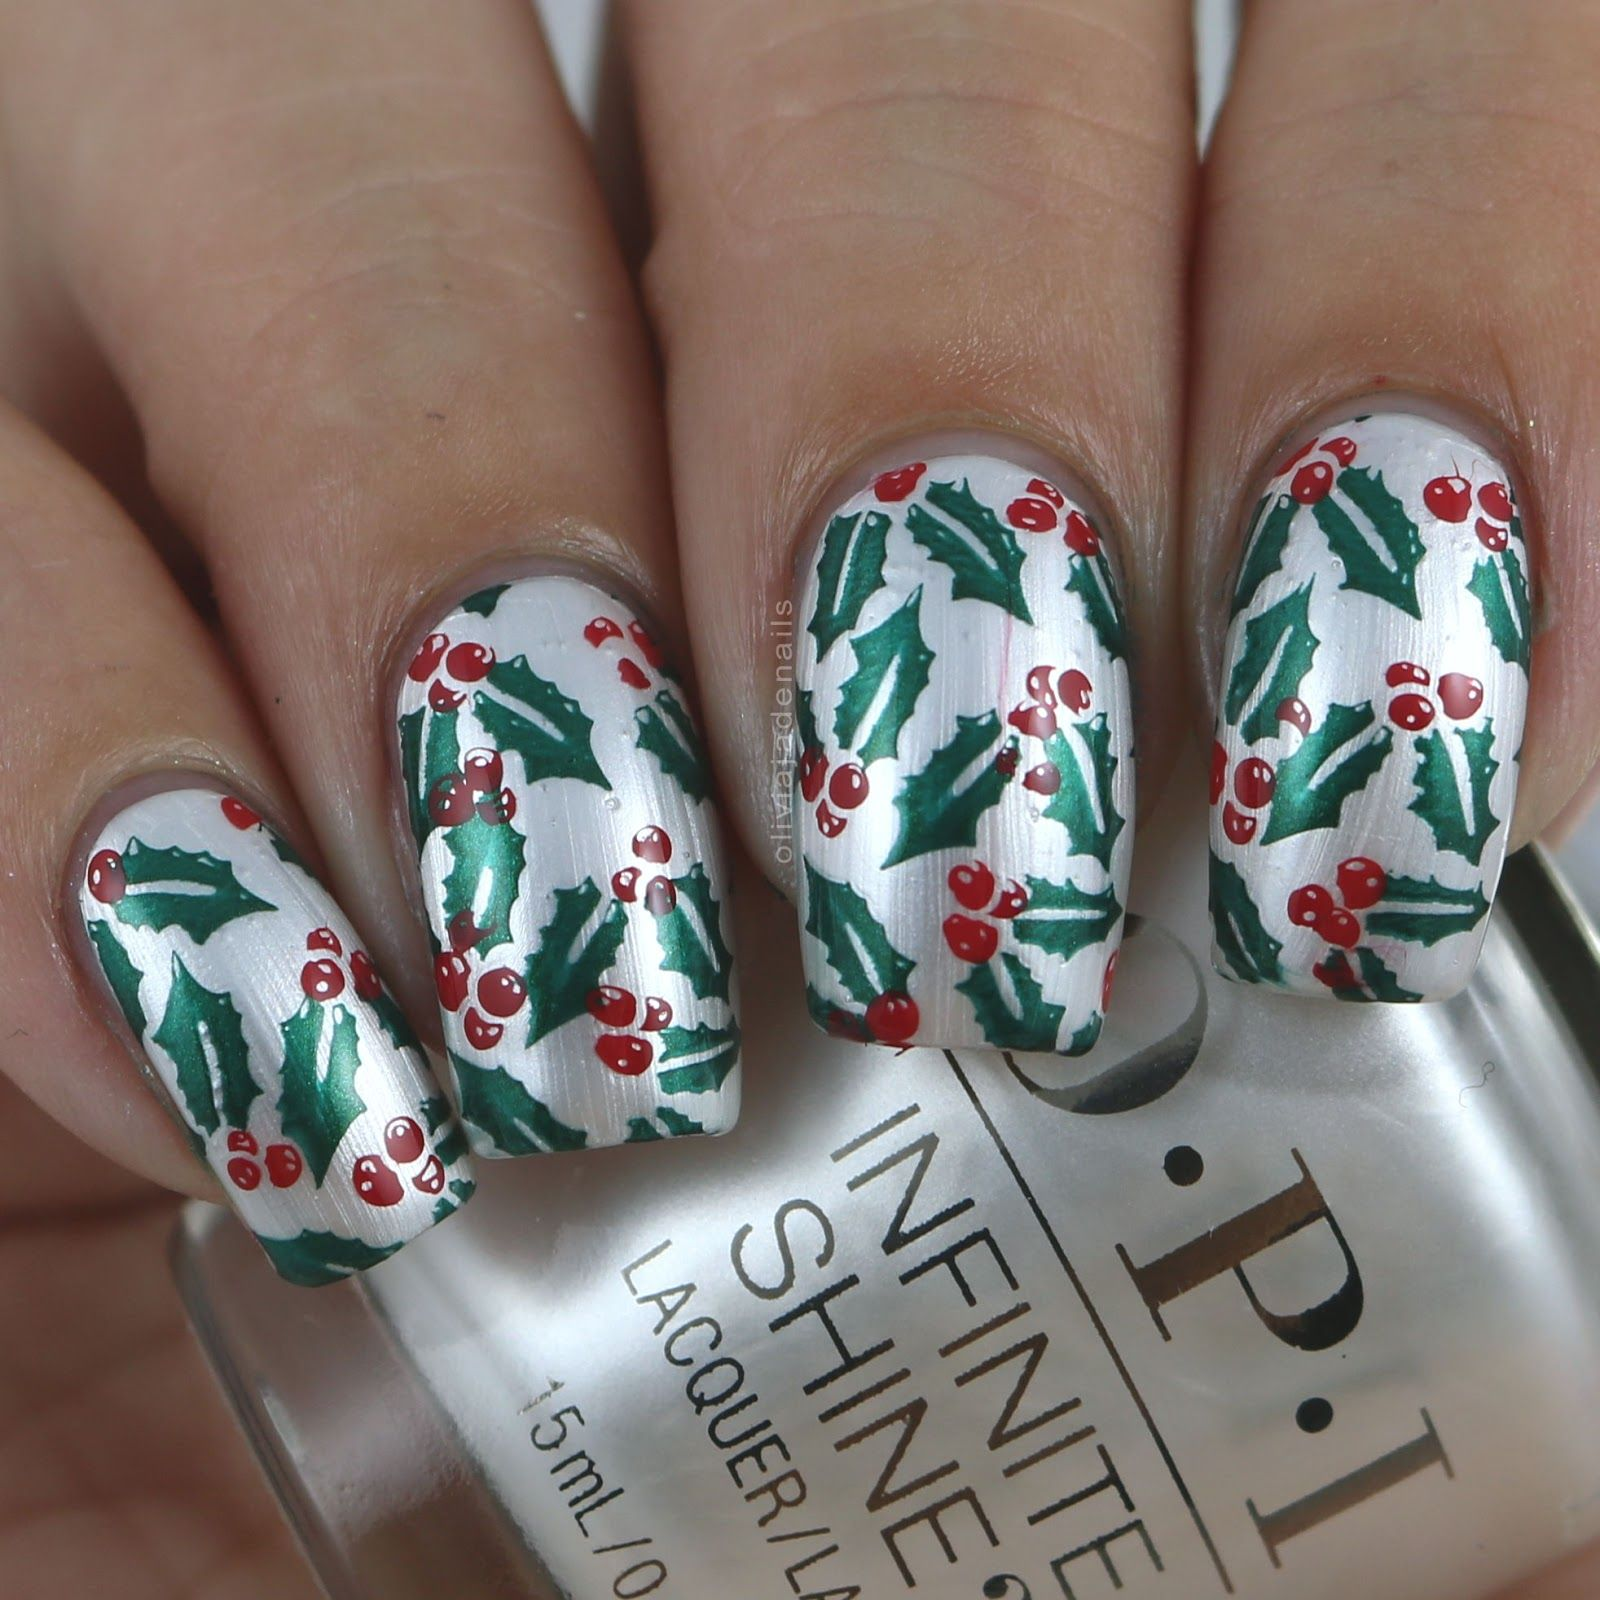 Uberchic Beauty Christmas 02 Stamping Plate Swatches Review